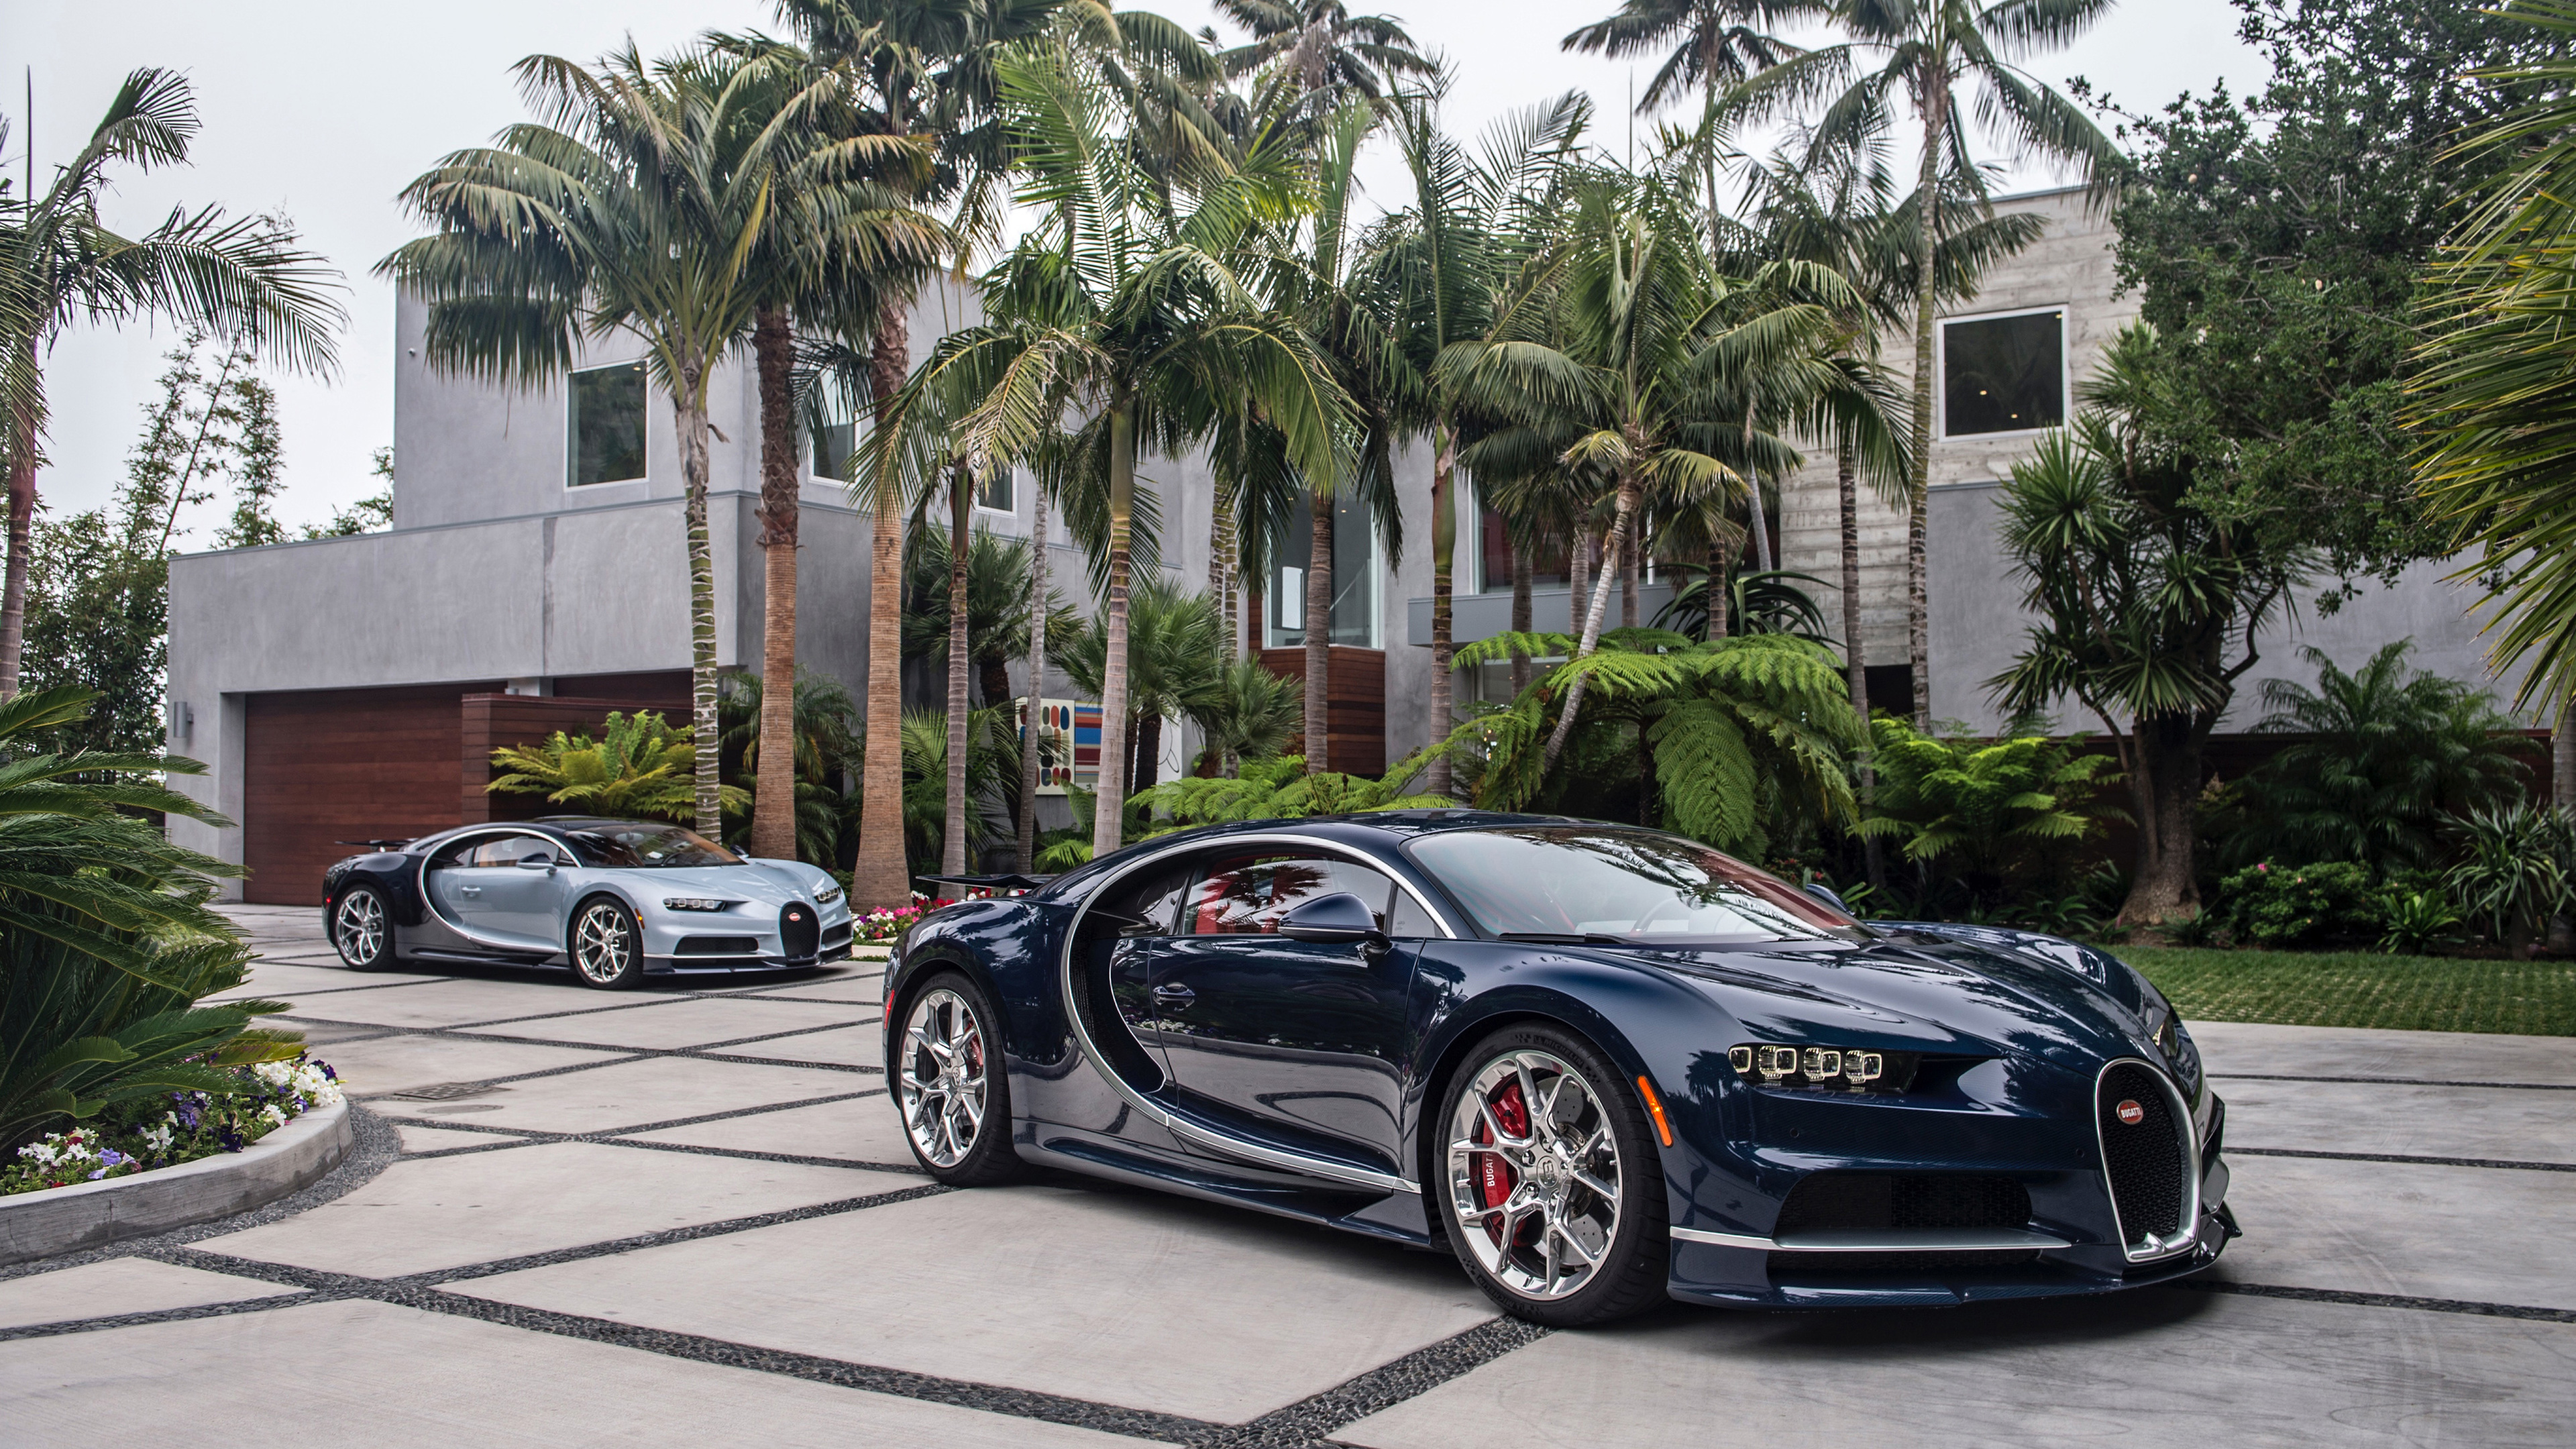 bugatti chiron 4k 1539107592 - Bugatti Chiron 4k - hd-wallpapers, bugatti wallpapers, bugatti chiron wallpapers, 4k-wallpapers, 2017 cars wallpapers